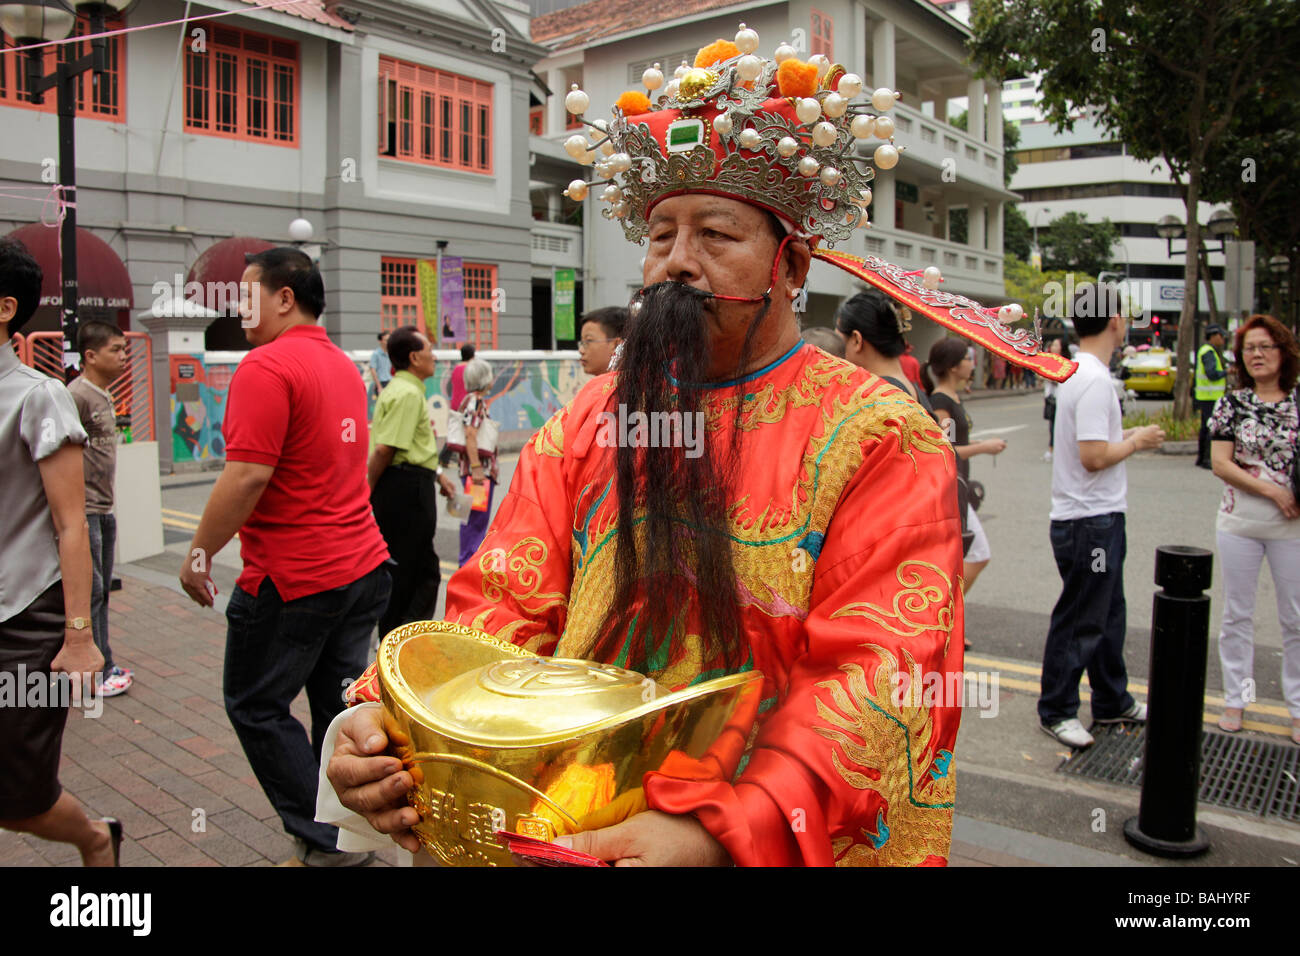 chinese man with costume and fake beard during chinese new year in Singapore Asia - Stock Image